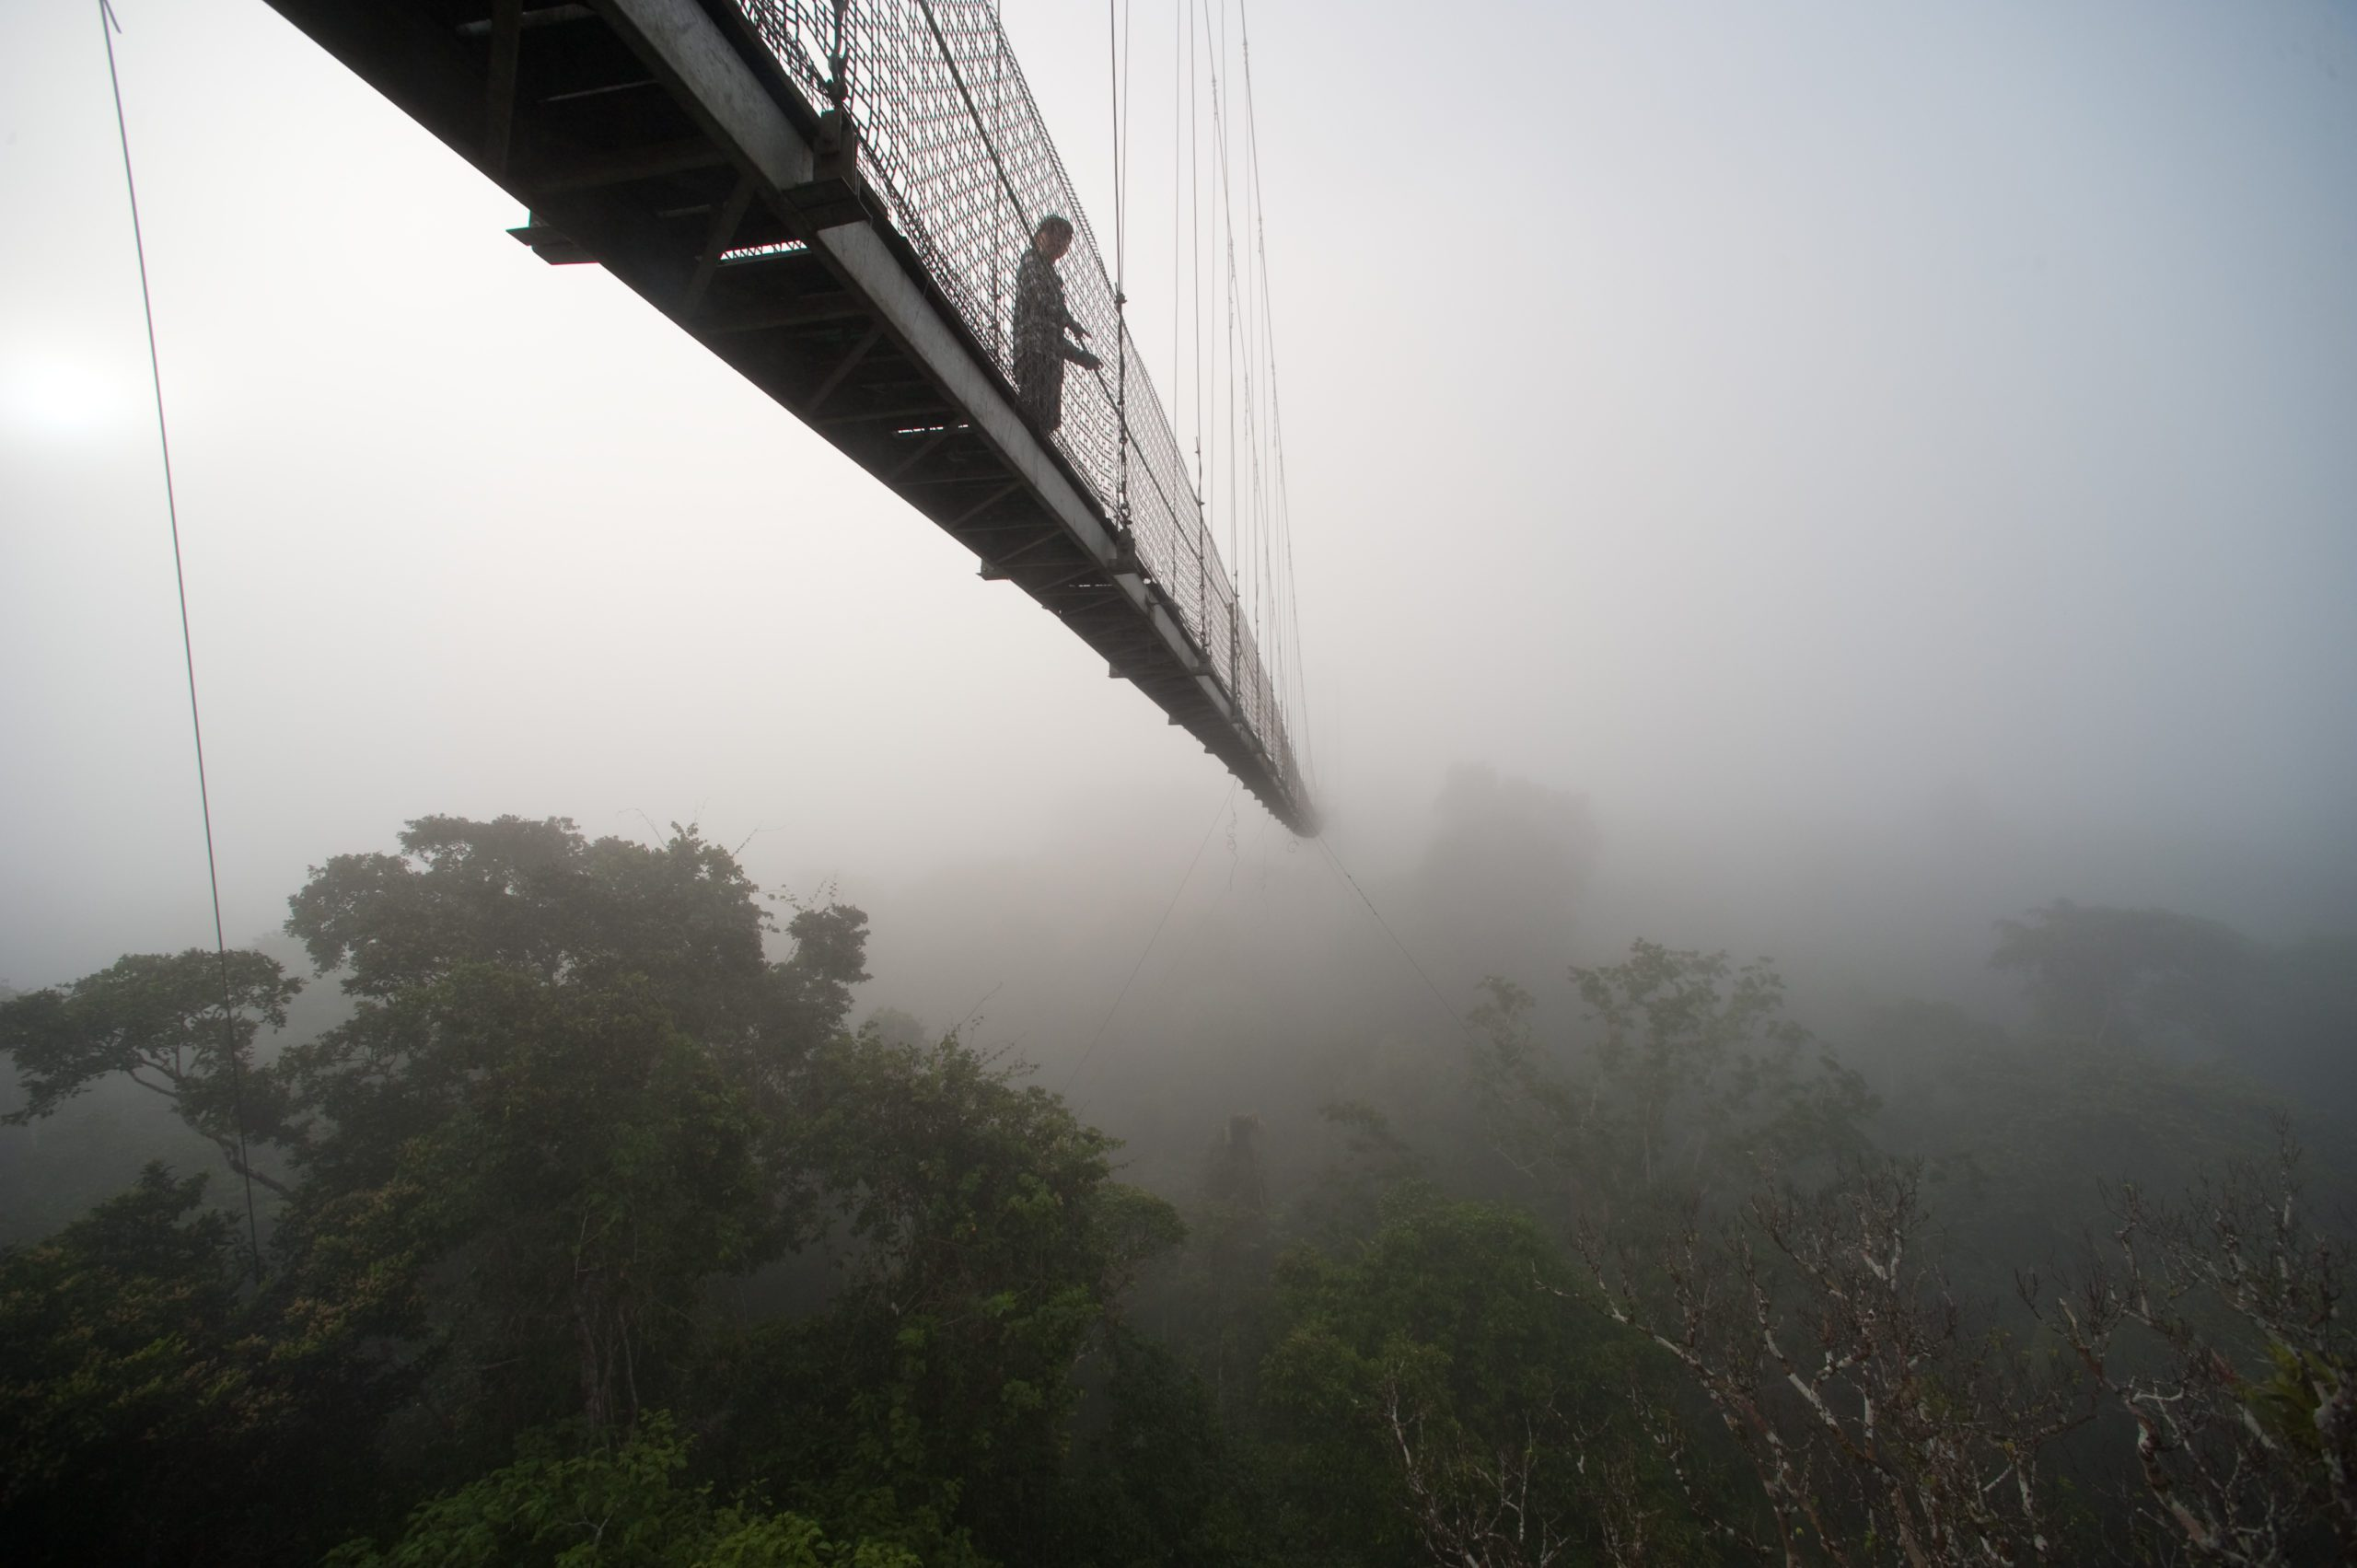 canopy bridge hanging over trees in clouds